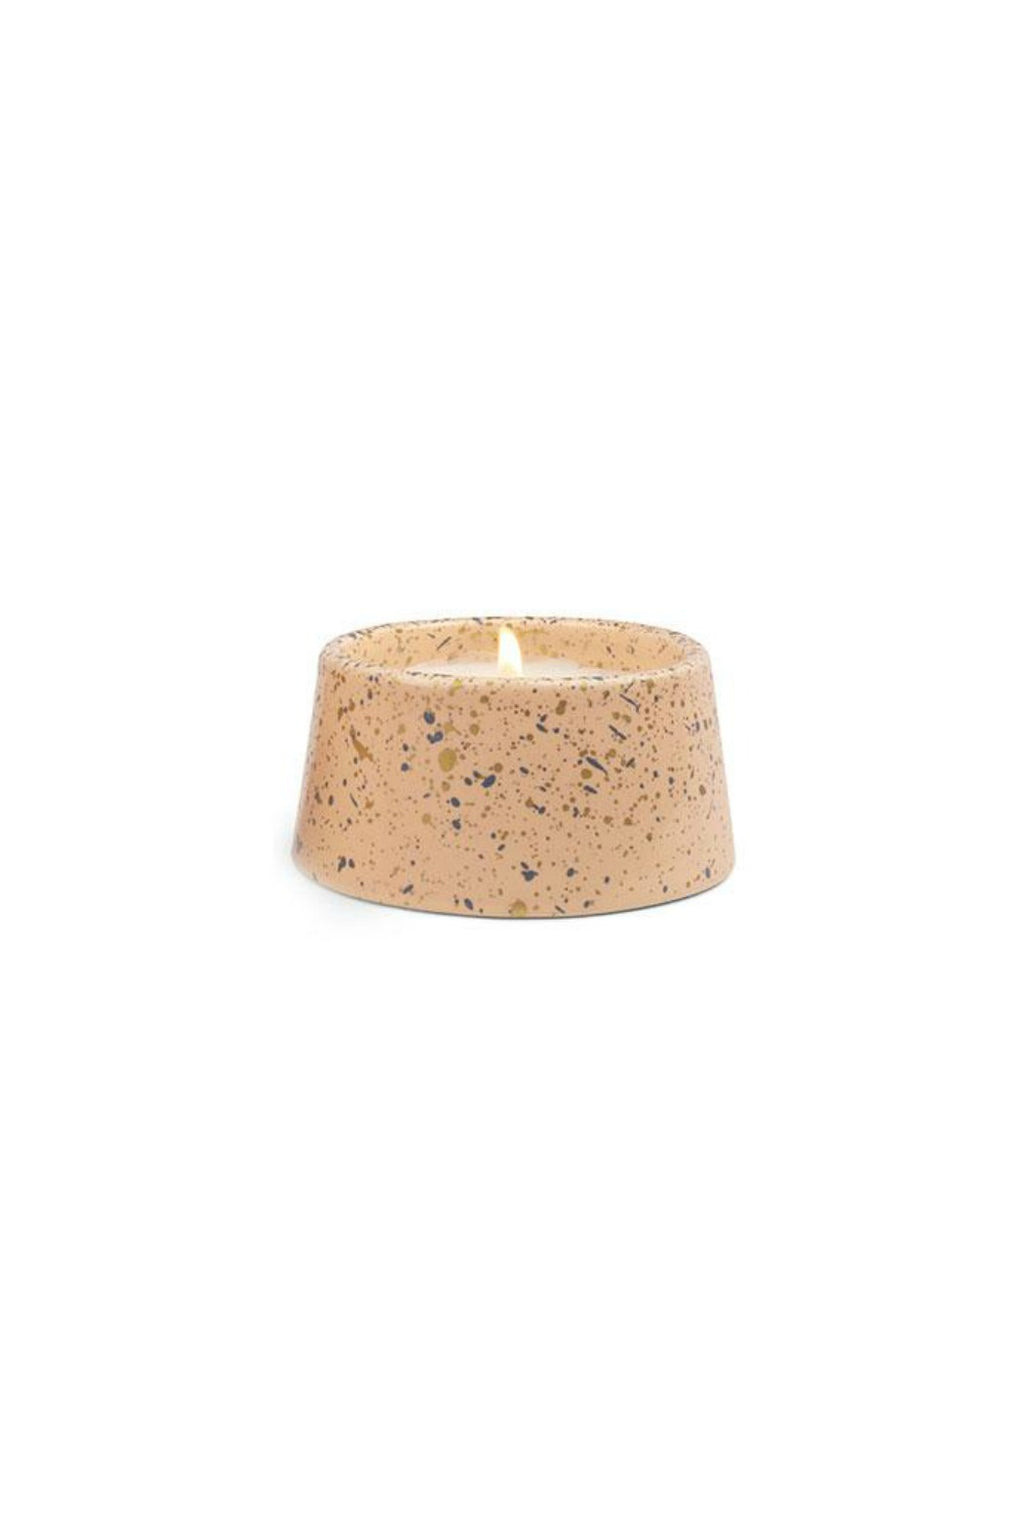 Paddywax Confetti Candle - Peony & Patchouli